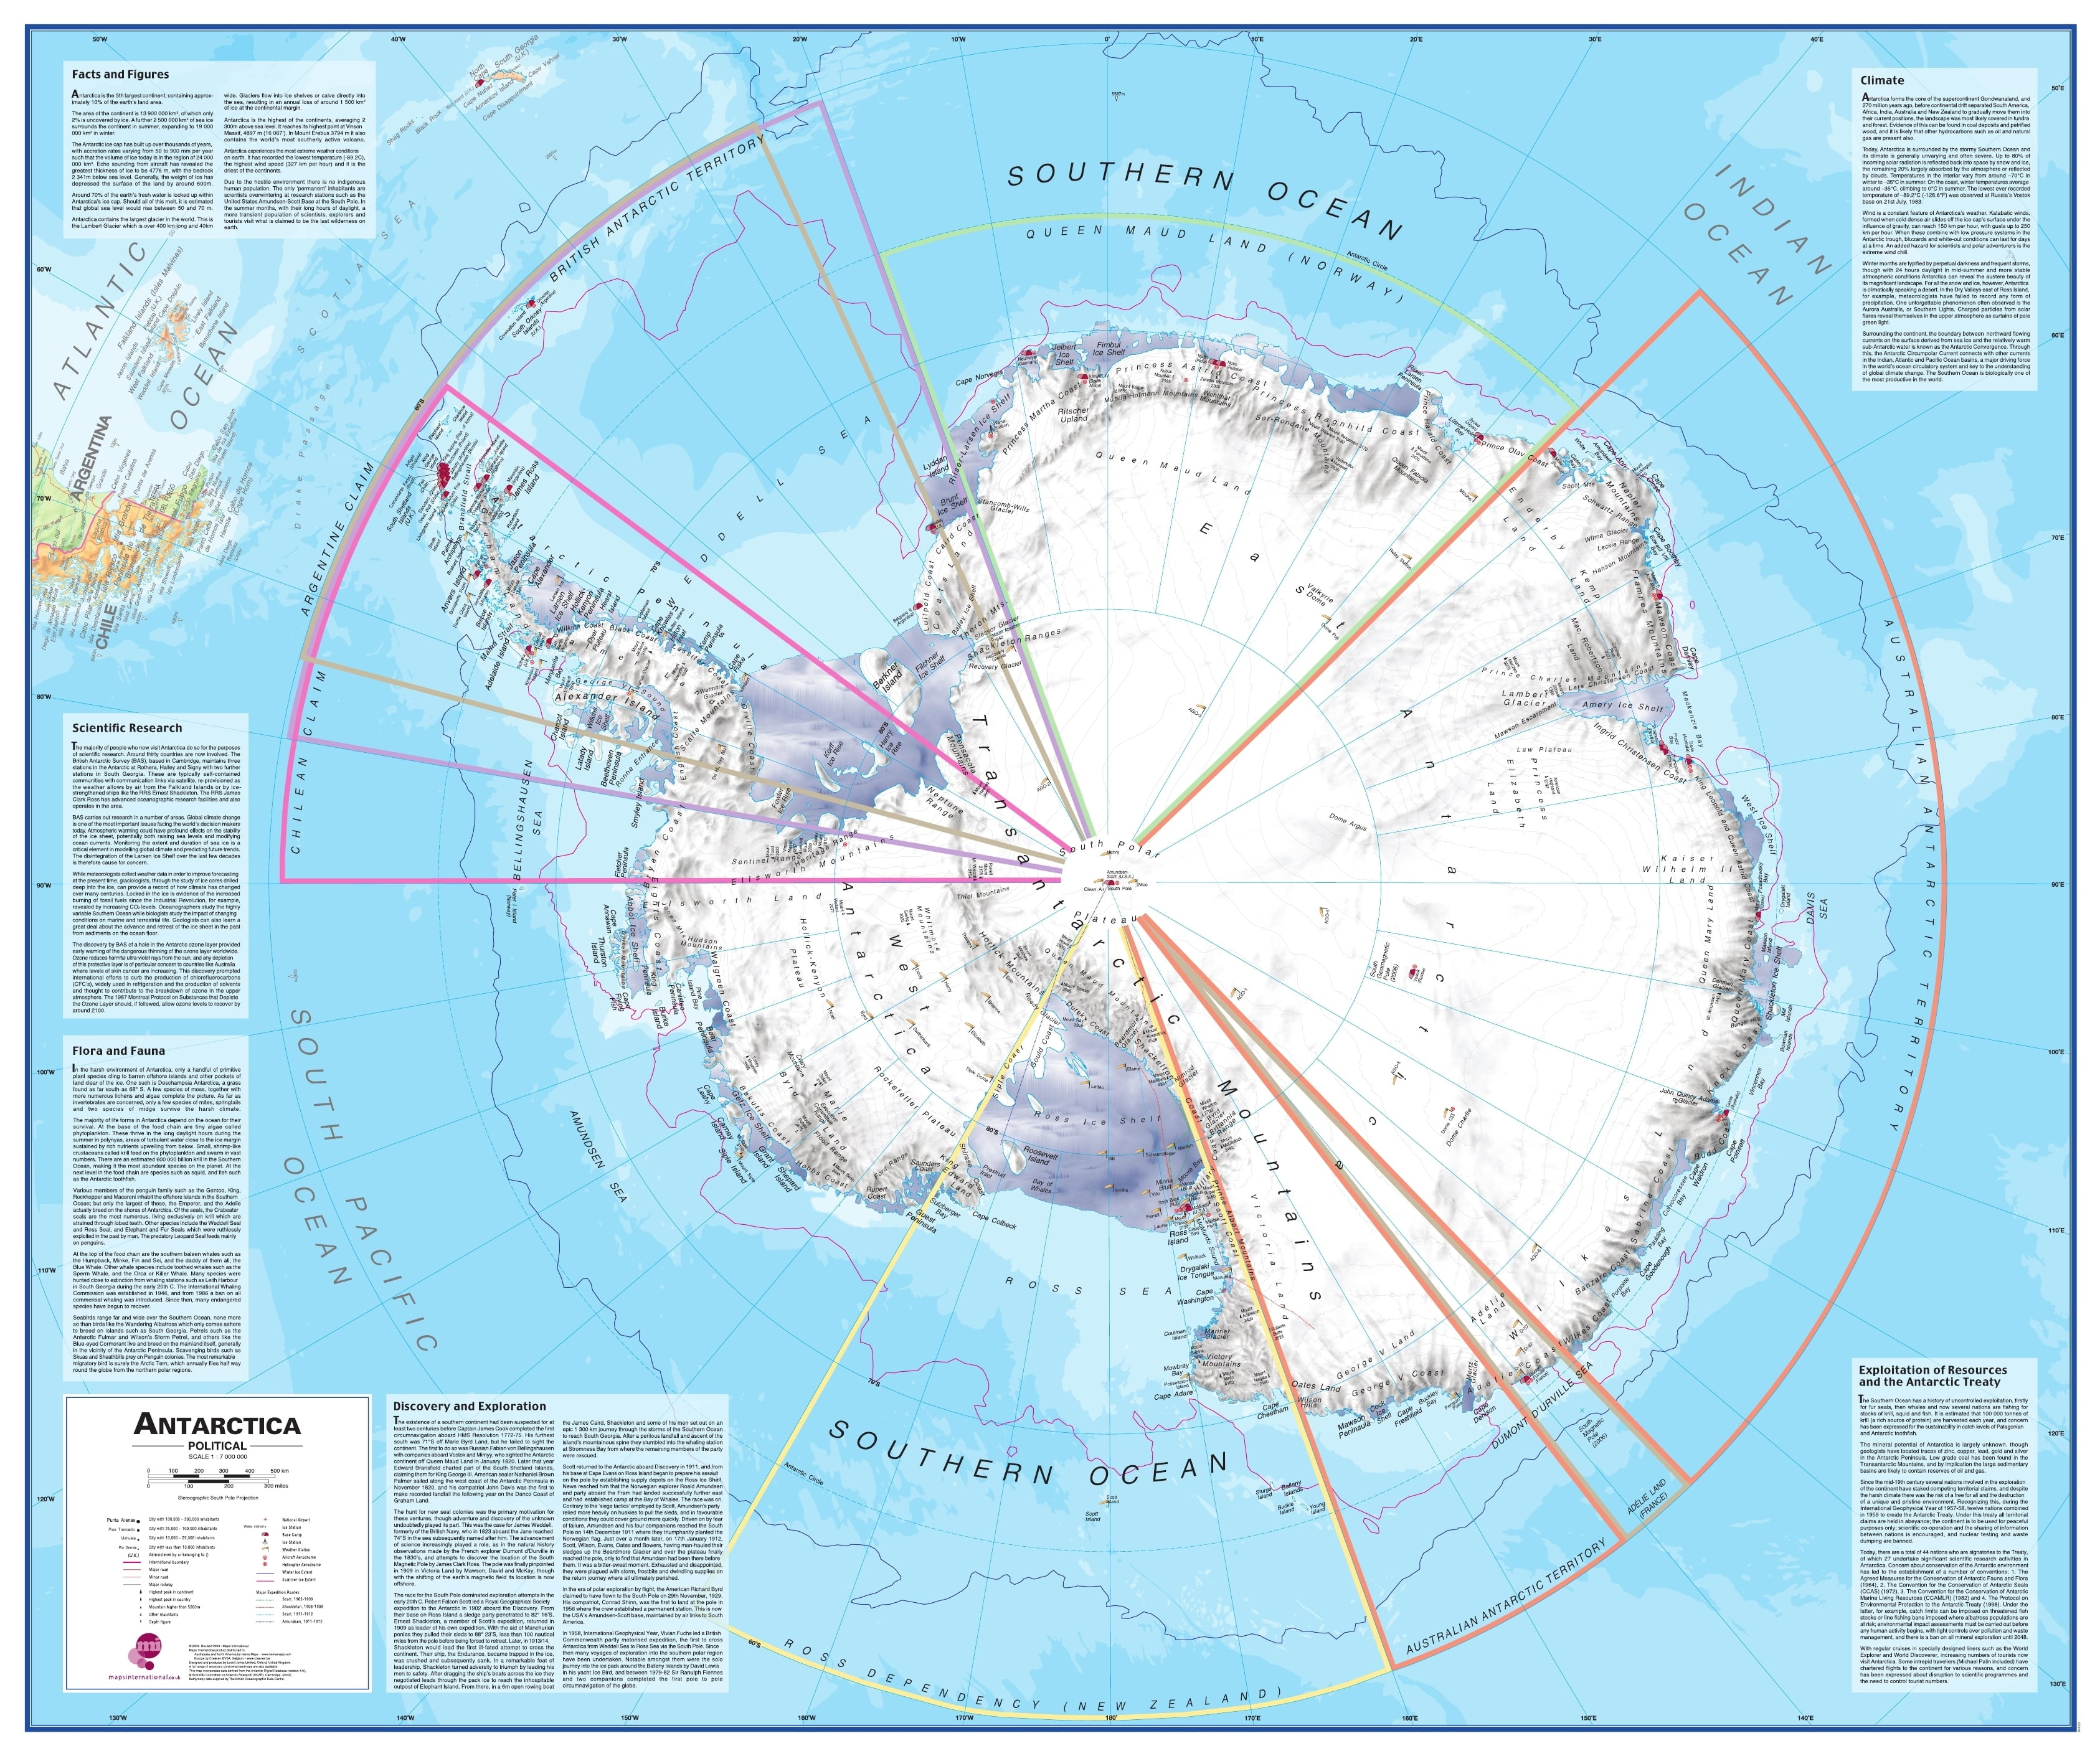 Antarctica South Pole Wall Map Arctic Antarctic Wall Maps - Antarctica maps